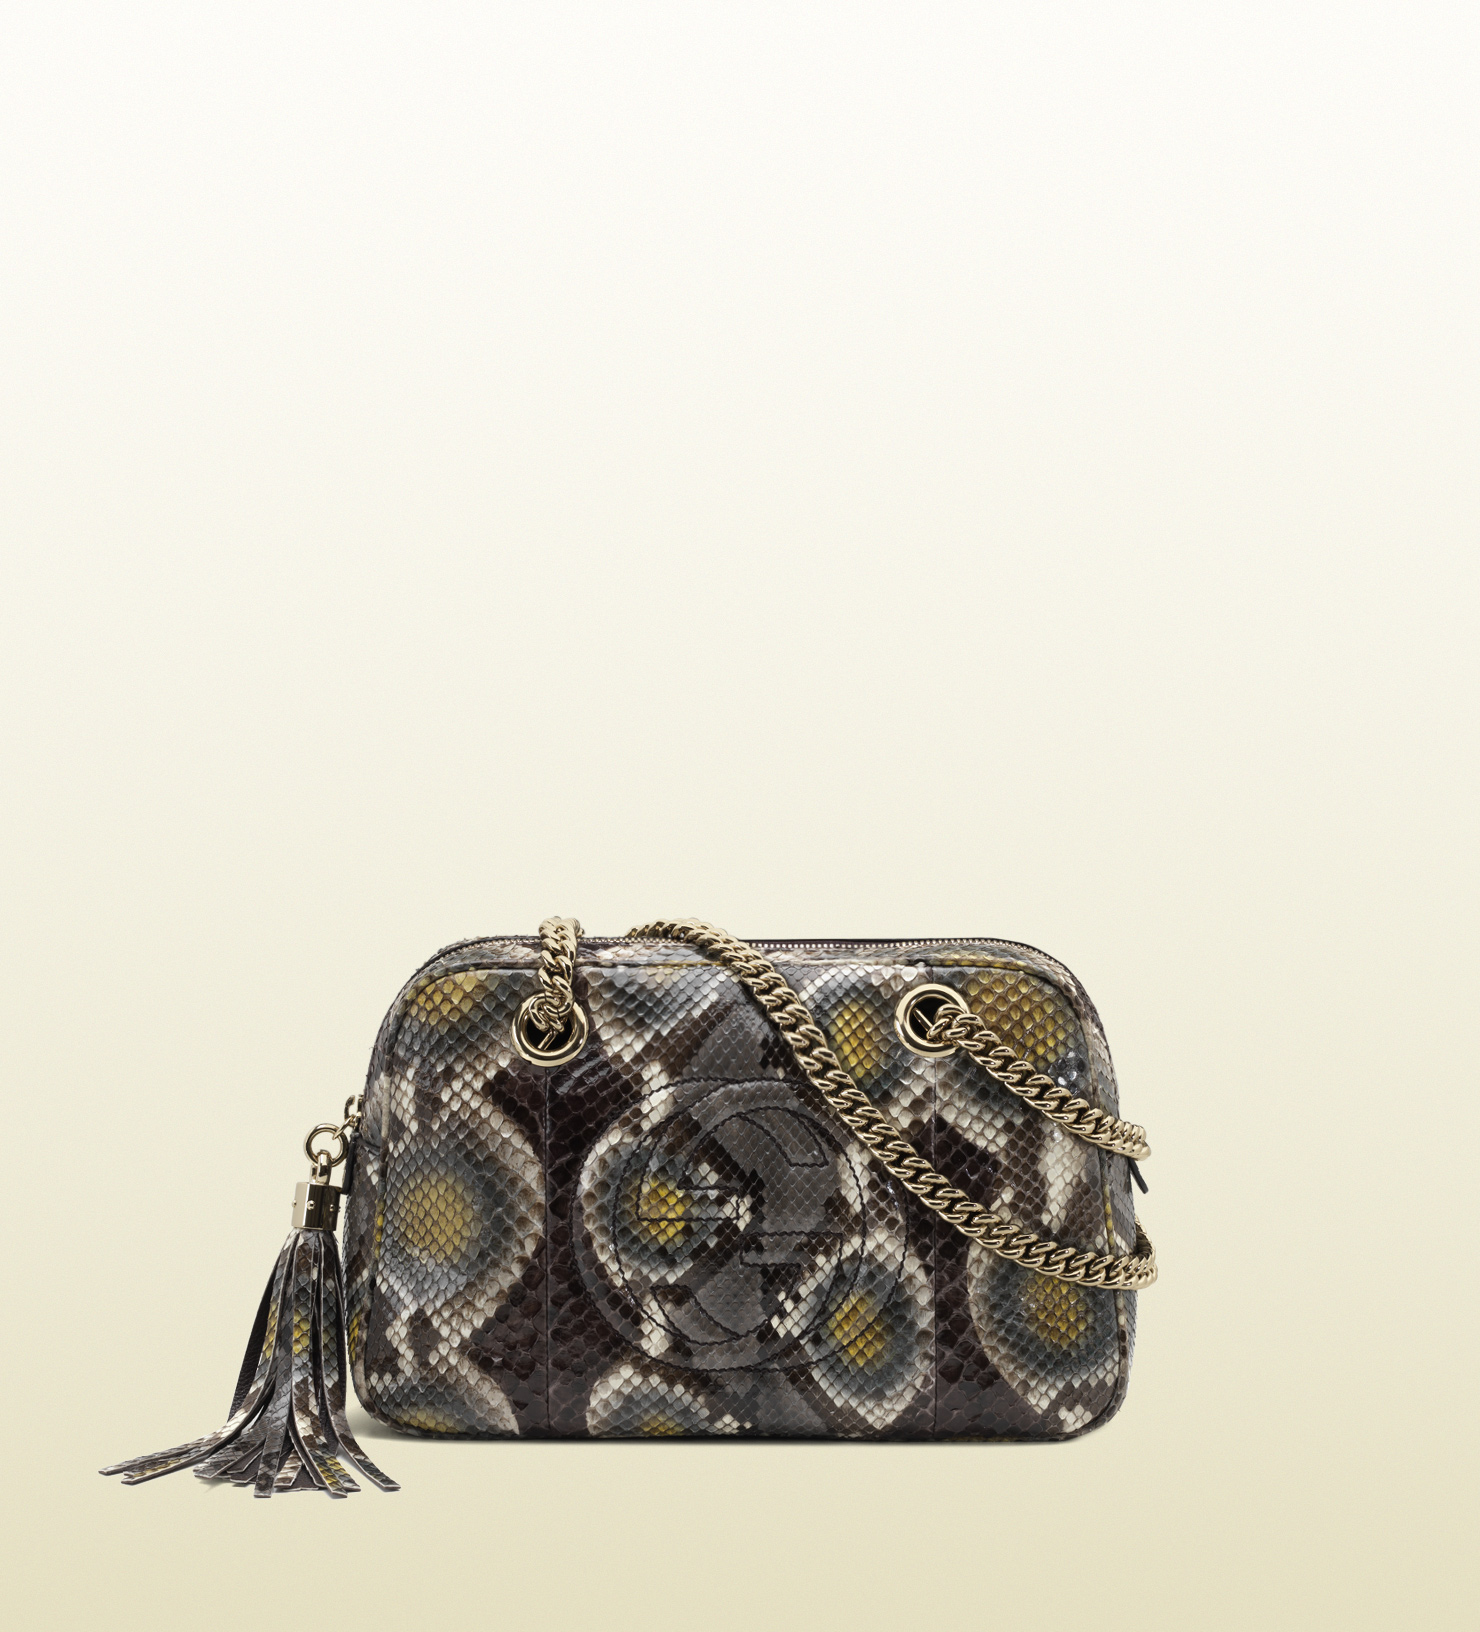 b509956b72c Gucci Soho Python Shoulder Bag with Double Chain Straps in Yellow - Lyst